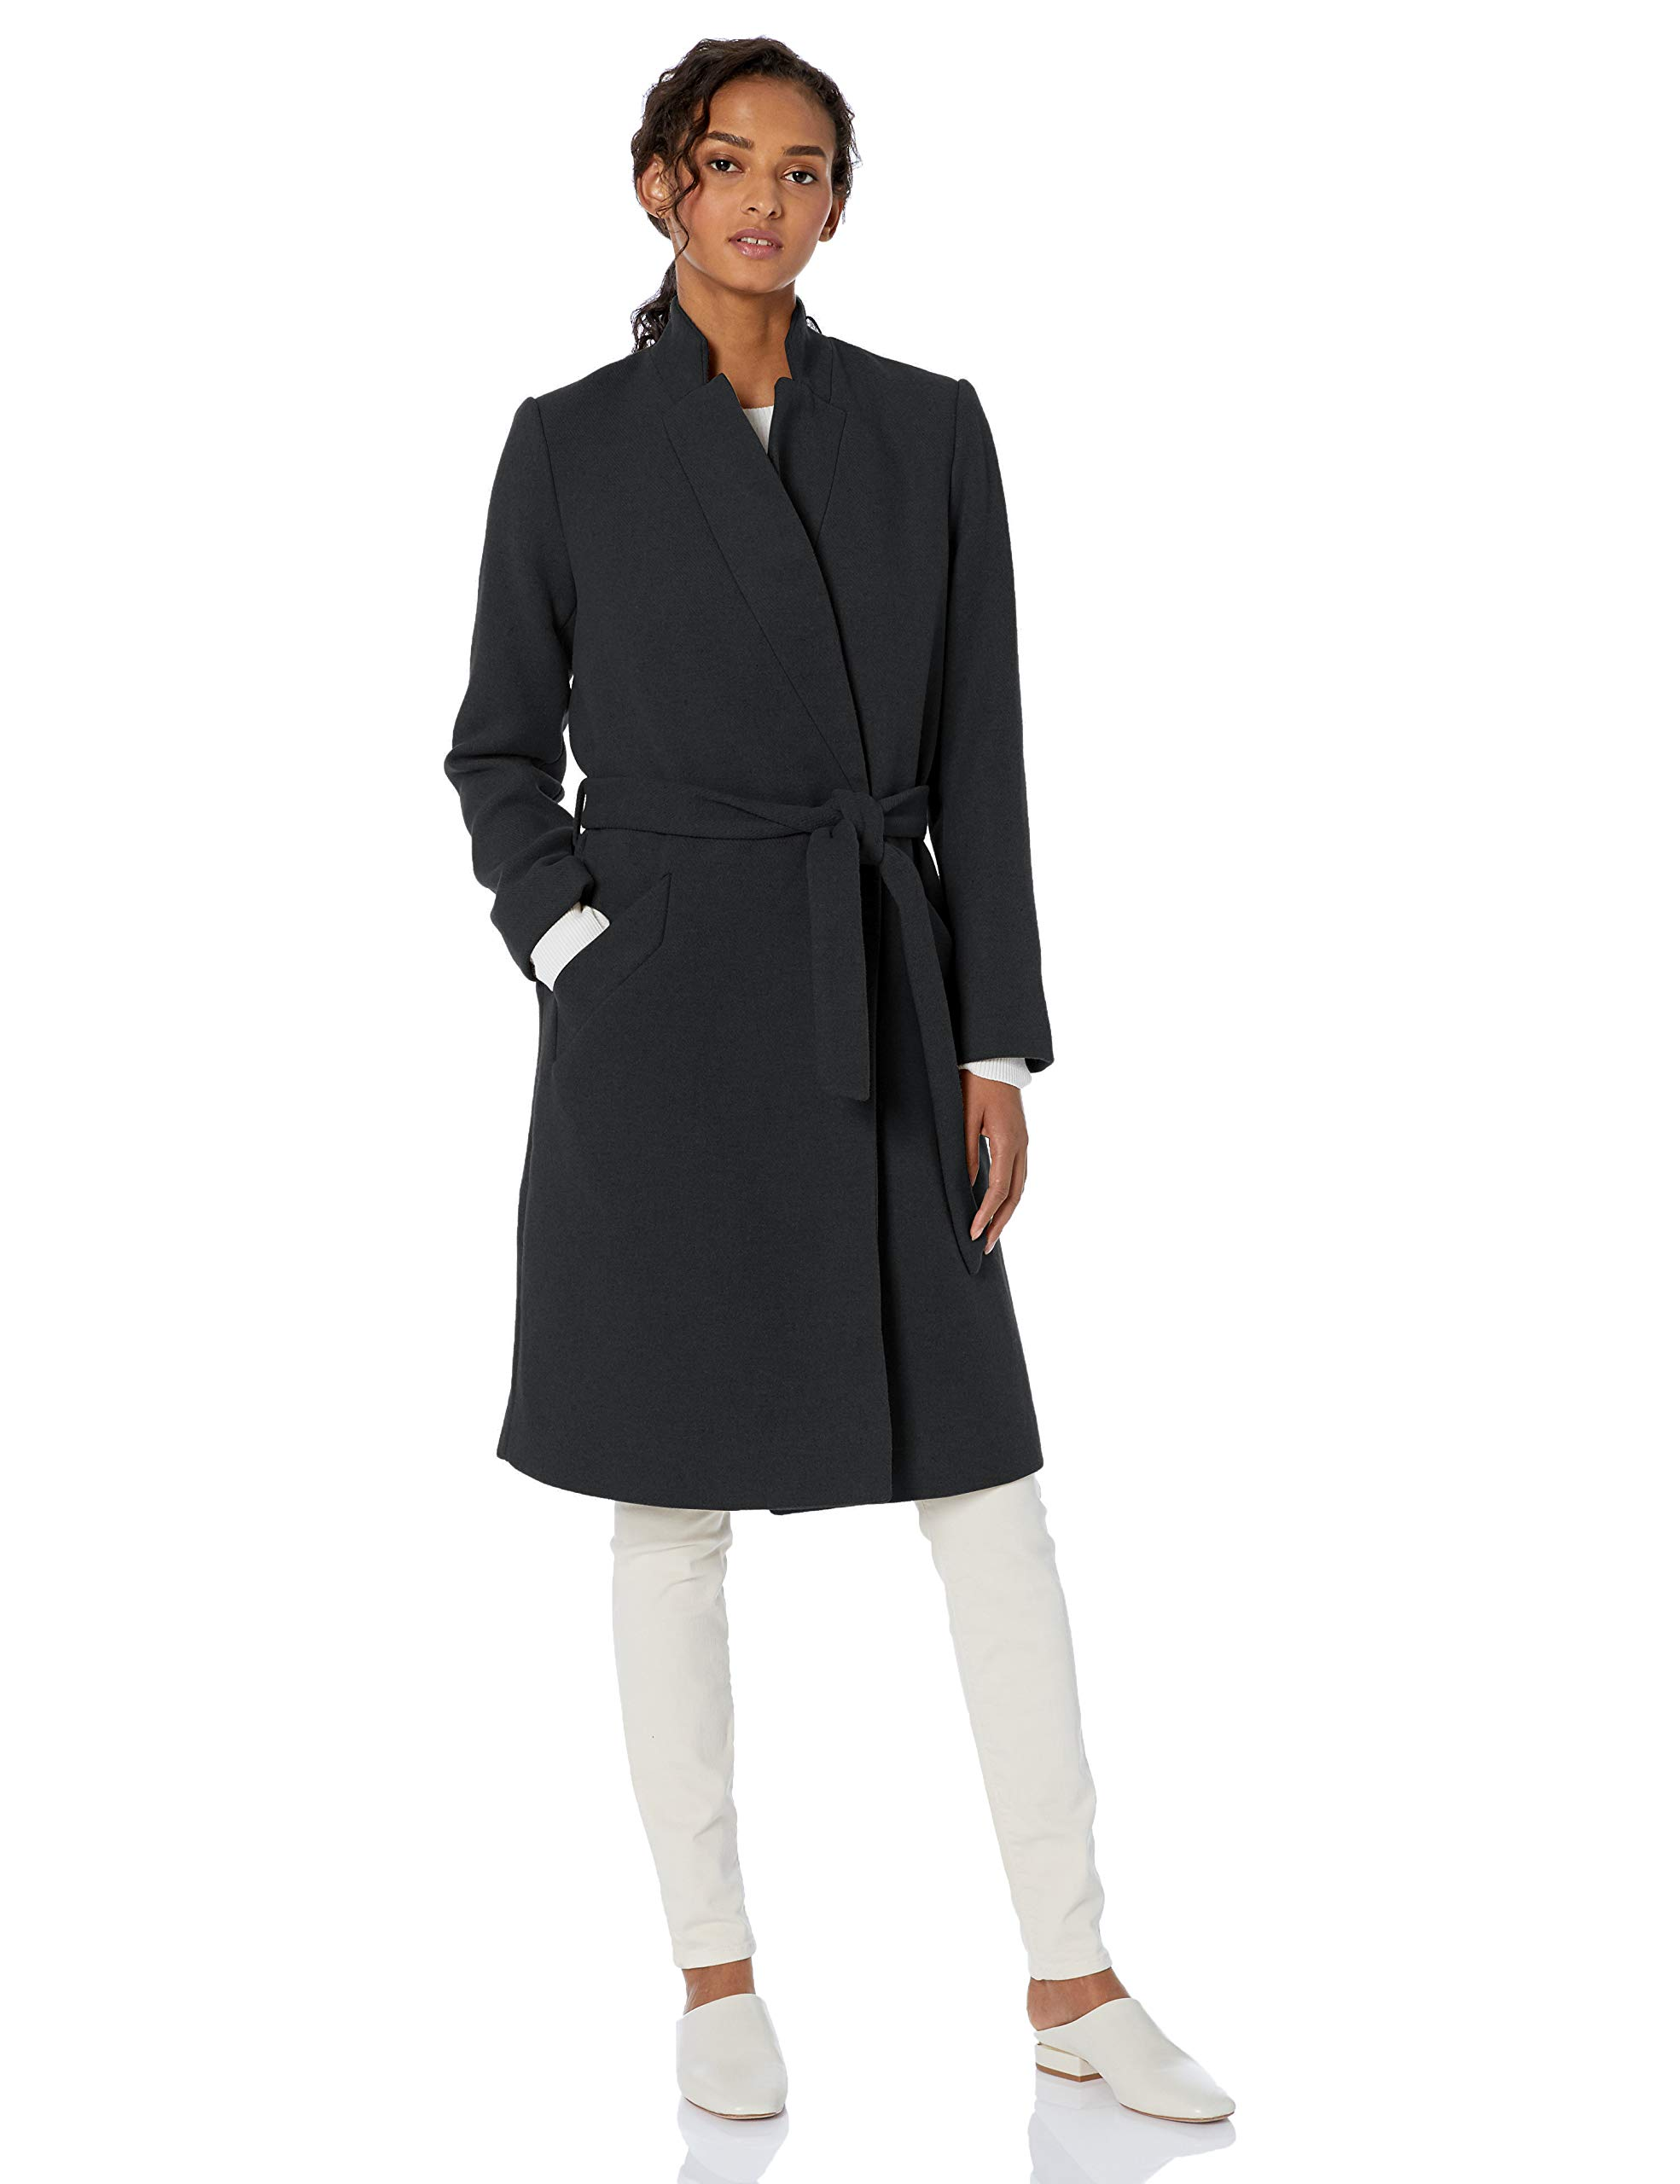 Amazon Brand - Daily Ritual Women's Wool Blend Belted Coat